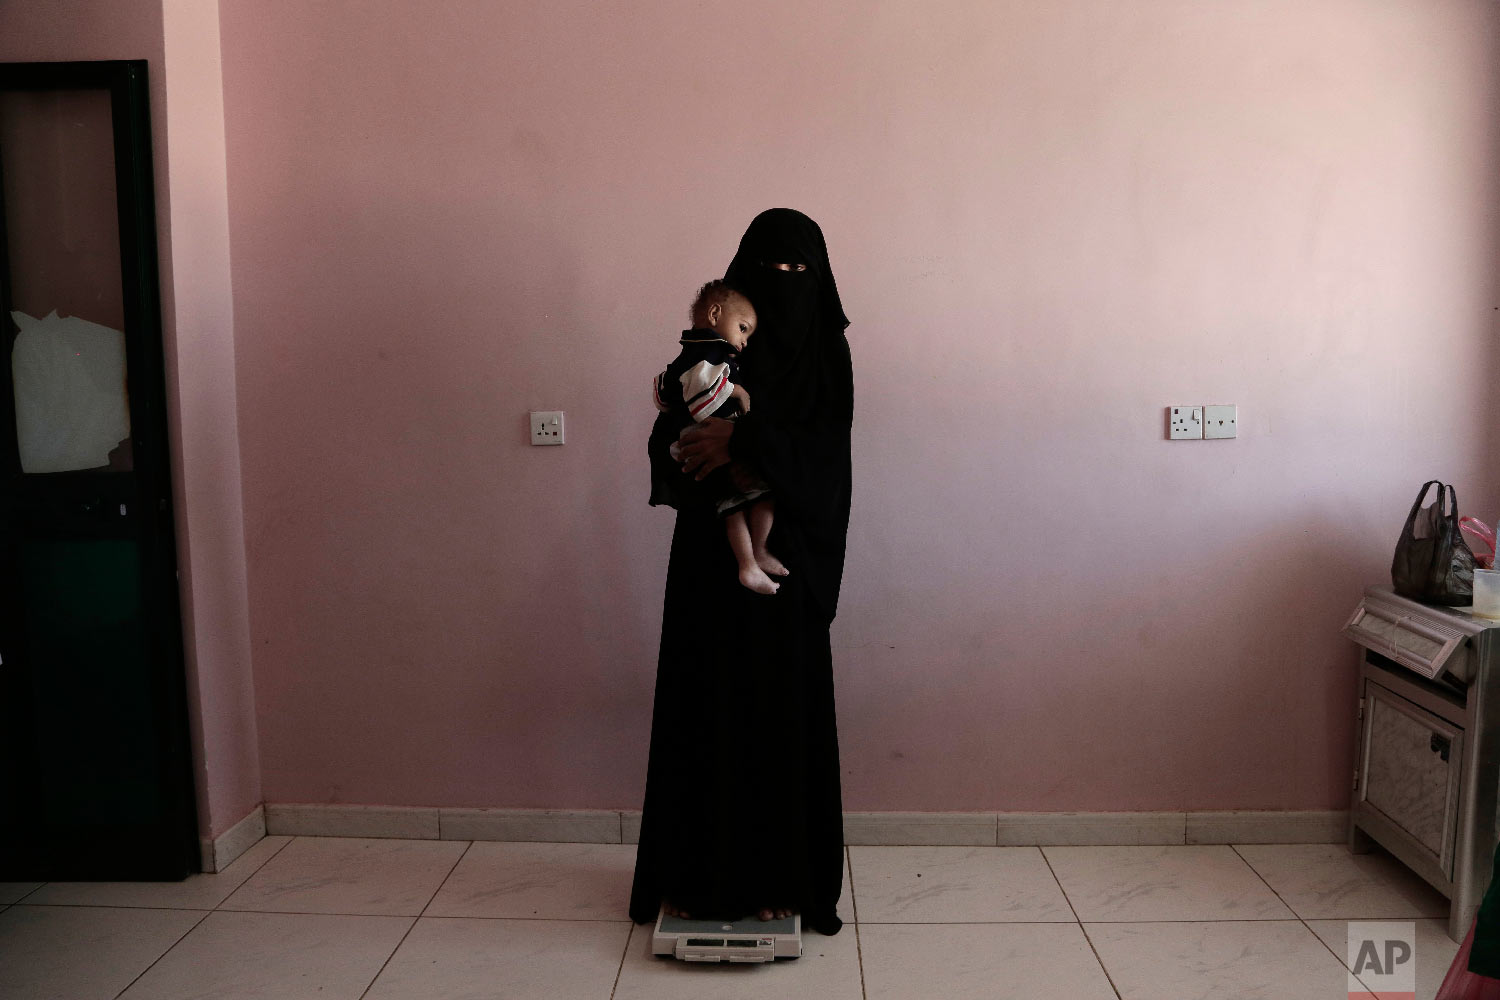 Umm Mizrah, a 25-year-old Yemeni woman, holds her son Mizrah on a scale in Al-Sadaqa Hospital in the southern Yemen city of Aden in this Feb. 13, 2018 photo. The woman, who is nearly into the second trimester of her pregnancy, weighed 38 kilograms (84 pounds), severely underweight. Mizrah, who was 17 months old, weighed 5.8 kilograms (12.8 pounds), around half the normal weight for his age. (AP Photo/Nariman El-Mofty)